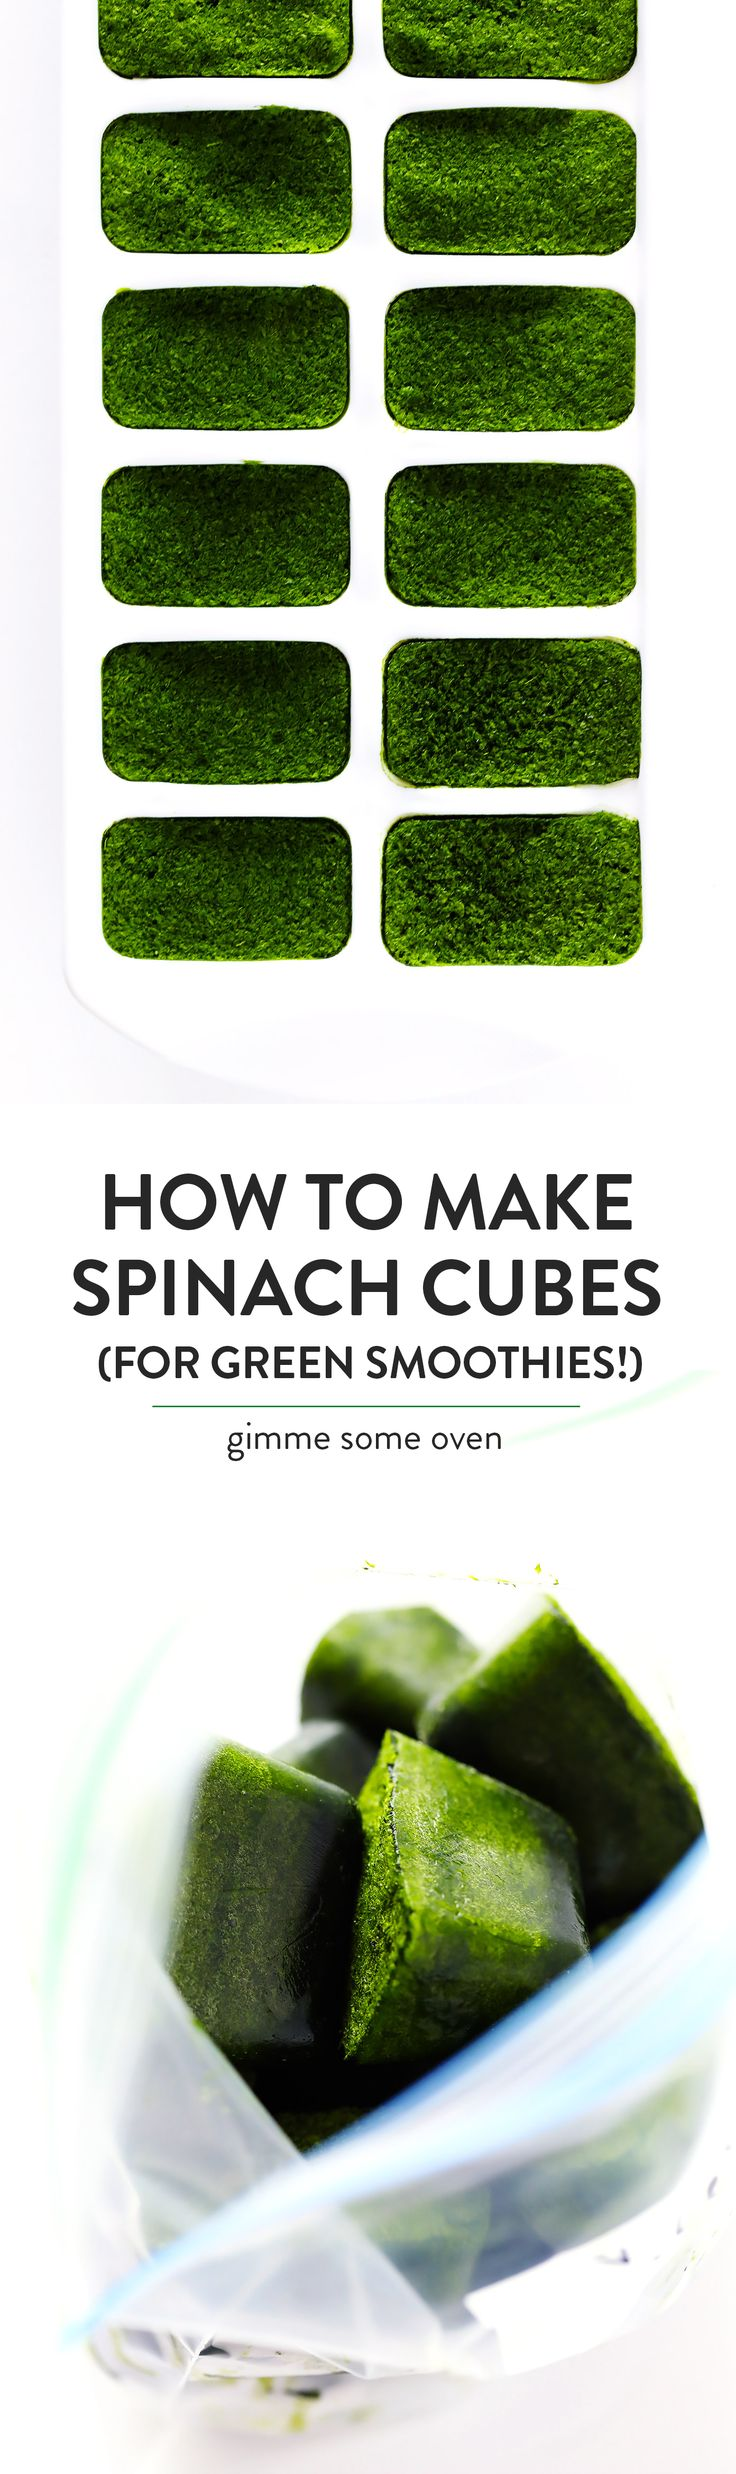 How to freeze spinach for your green smoothies and other